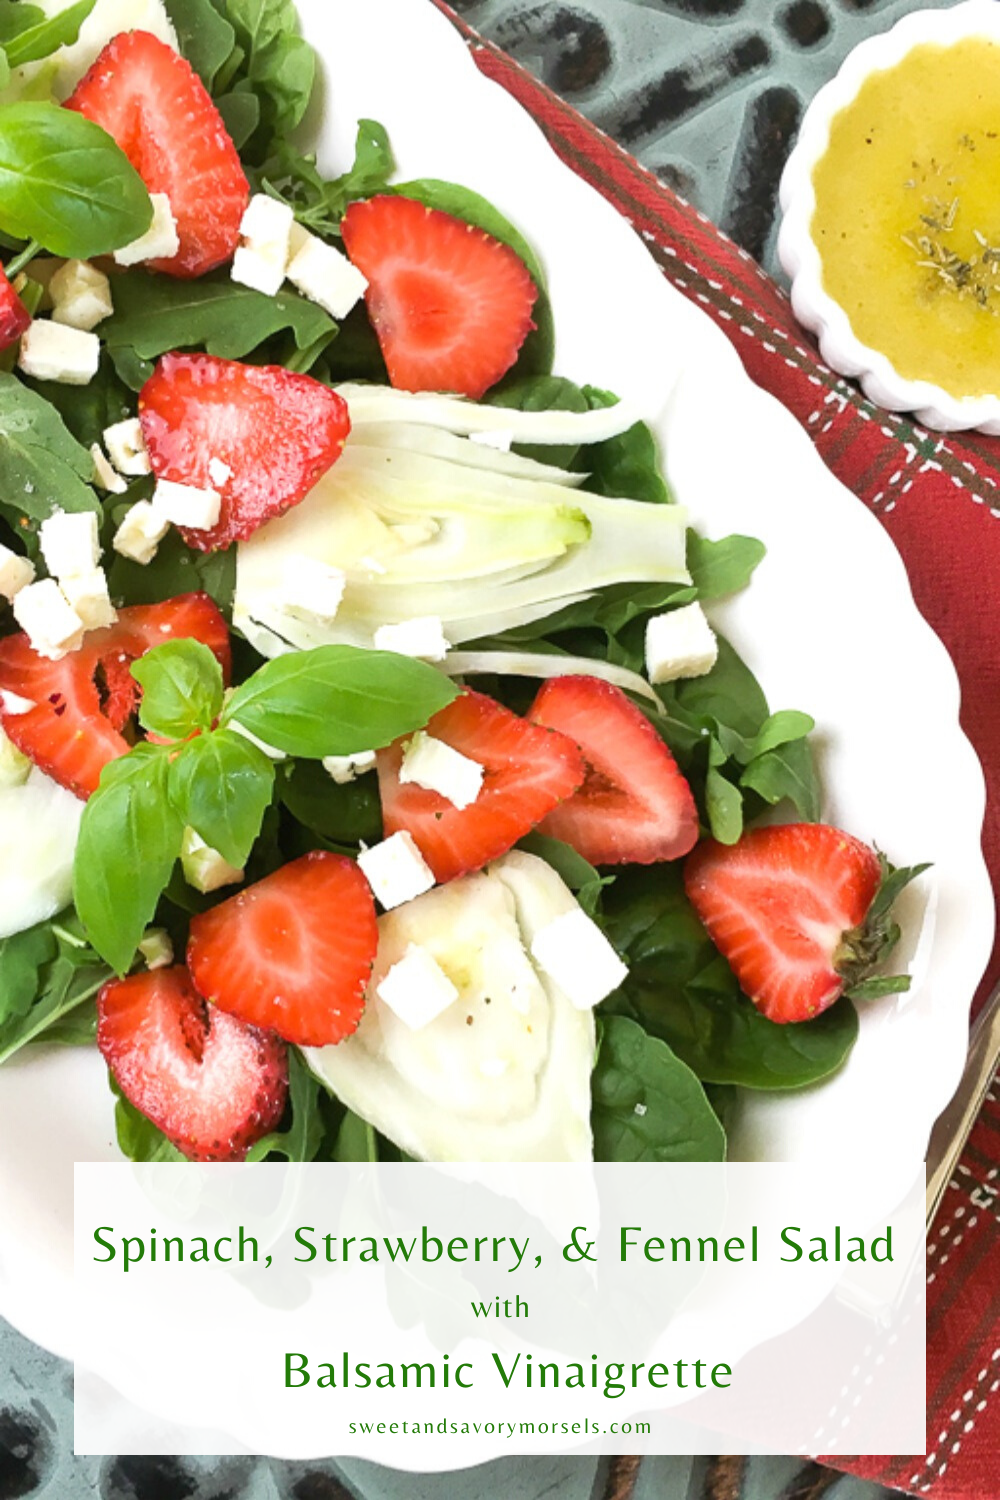 Sweet, juicy strawberries, peppery arugula, crisp fennel, and creamy feta are tossed together with a sweet and savory homemade Balsamic Vinaigrette dressing in this delicious Spinach, Strawberry and Fennel Salad with Balsamic Vinaigrette.